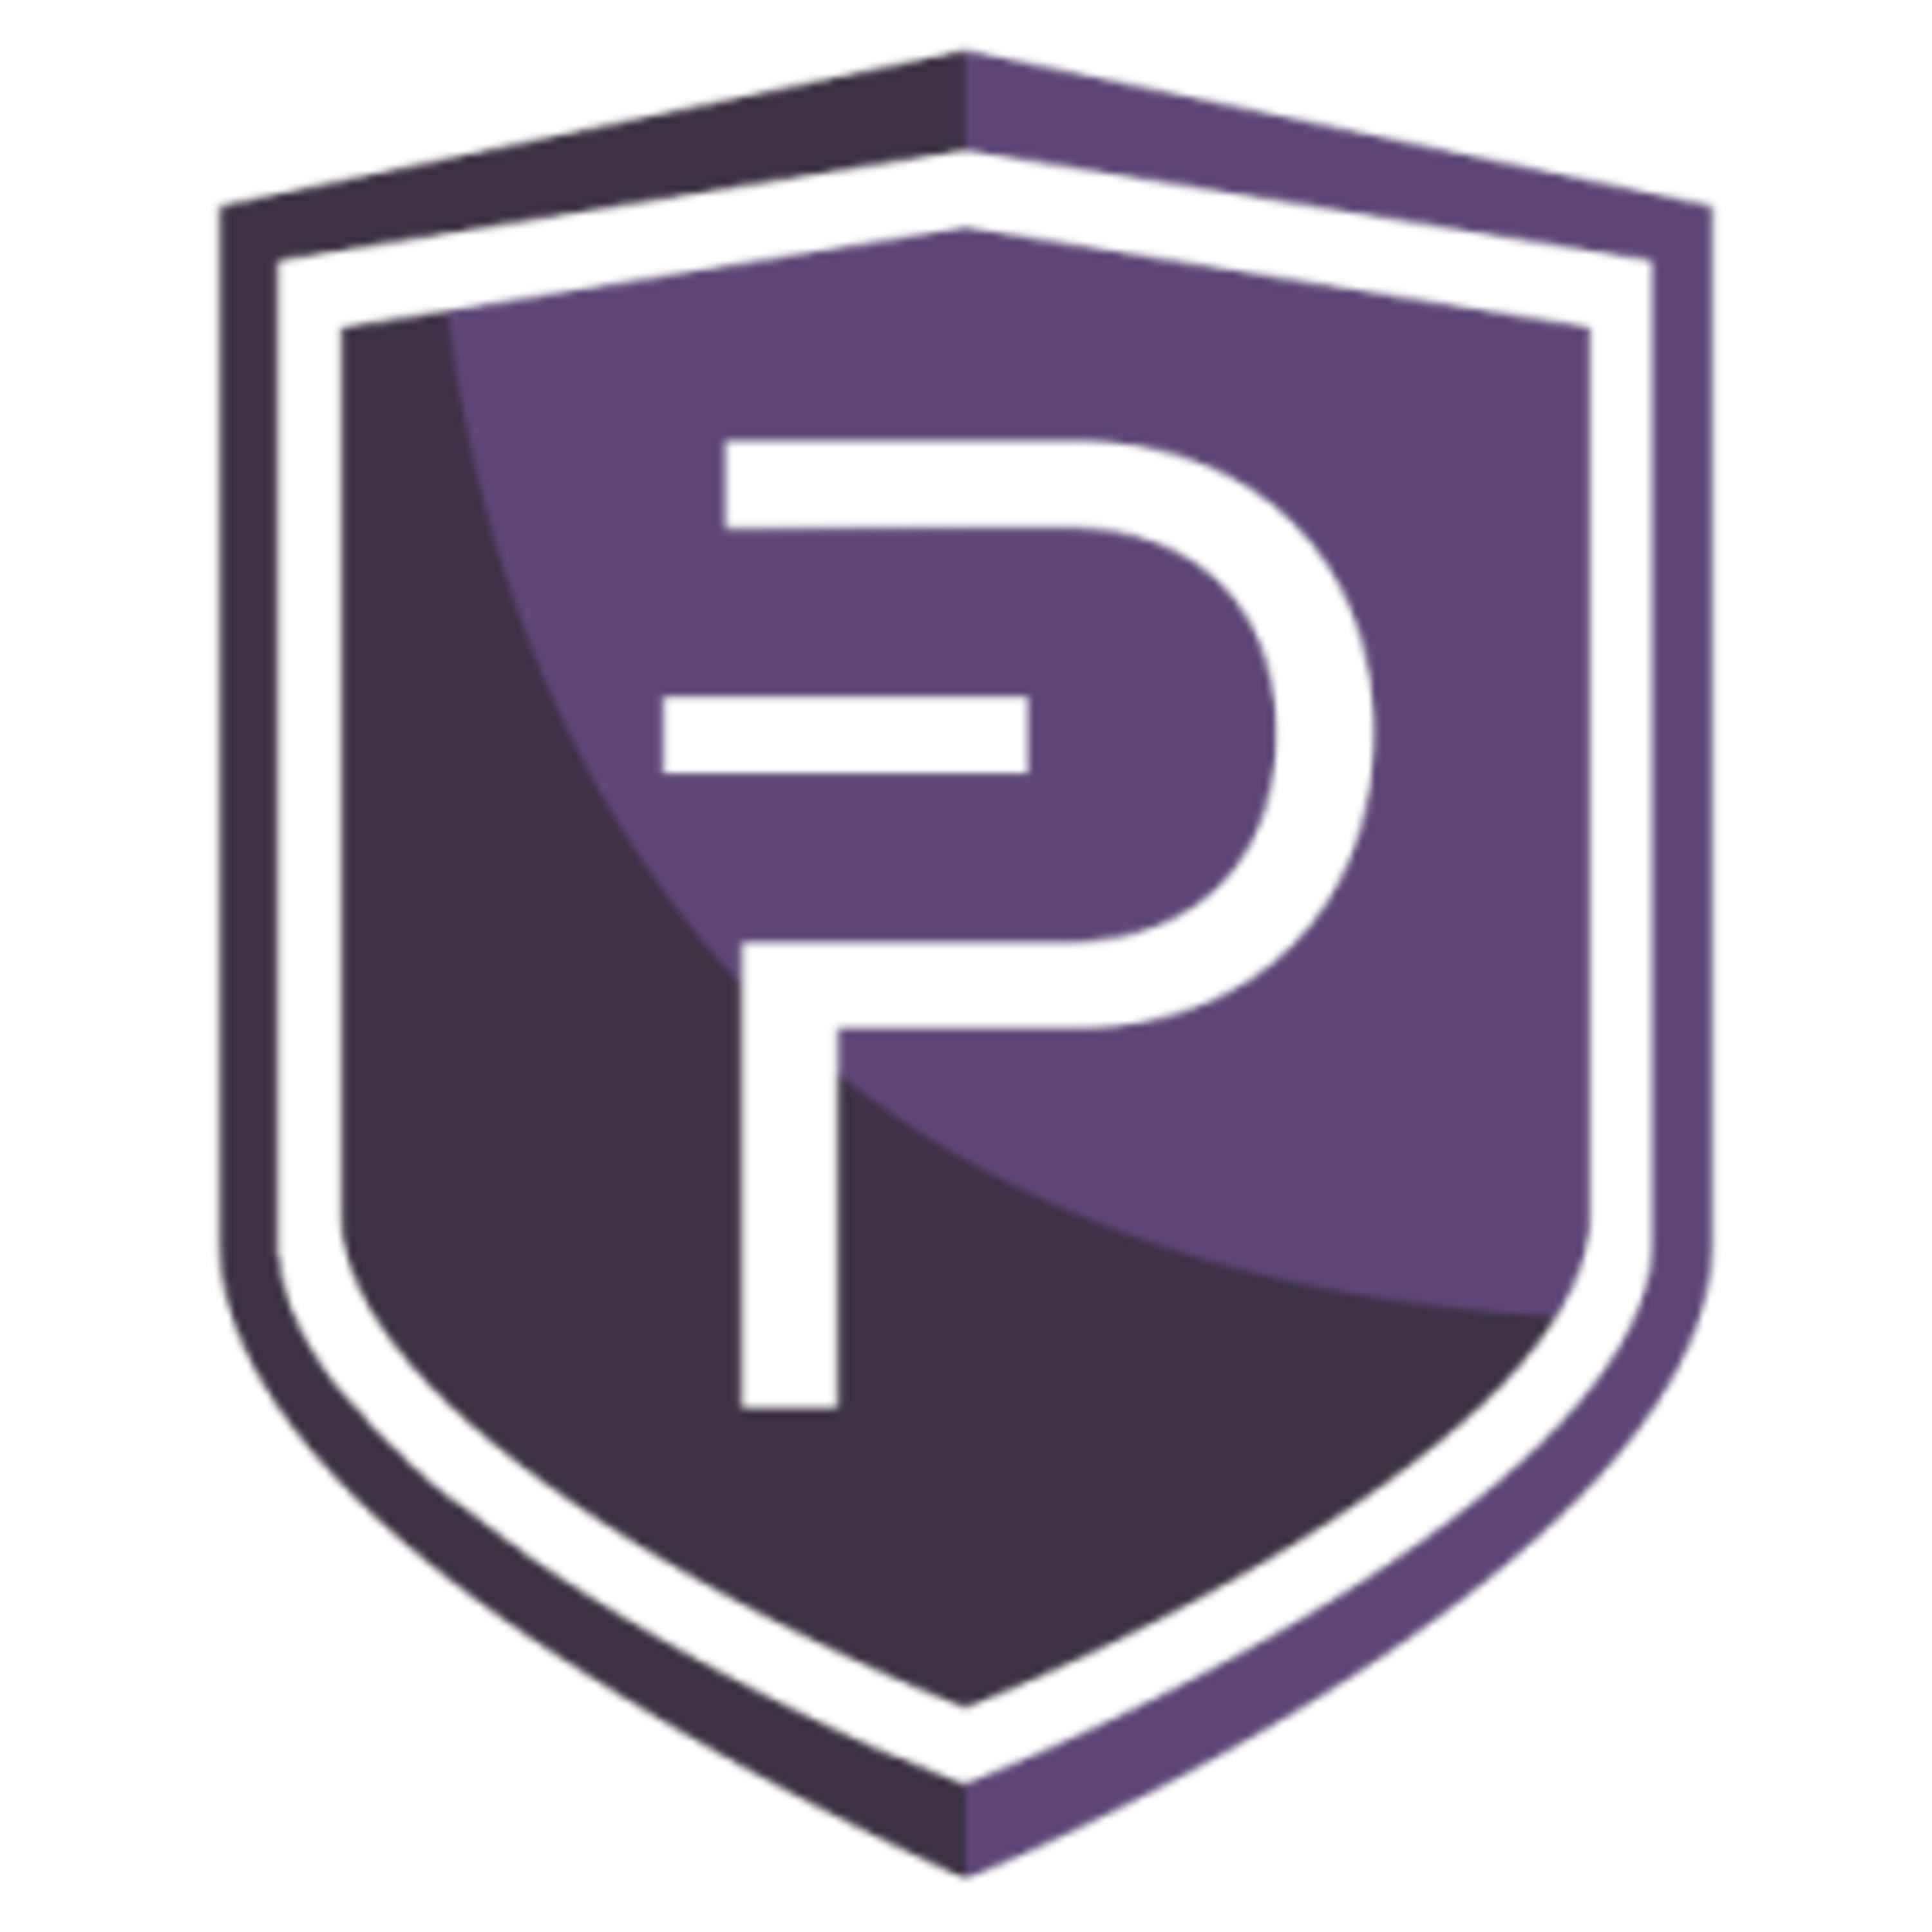 PIVXMisc-20-03: Why is PIVX Better than Bitcoin?